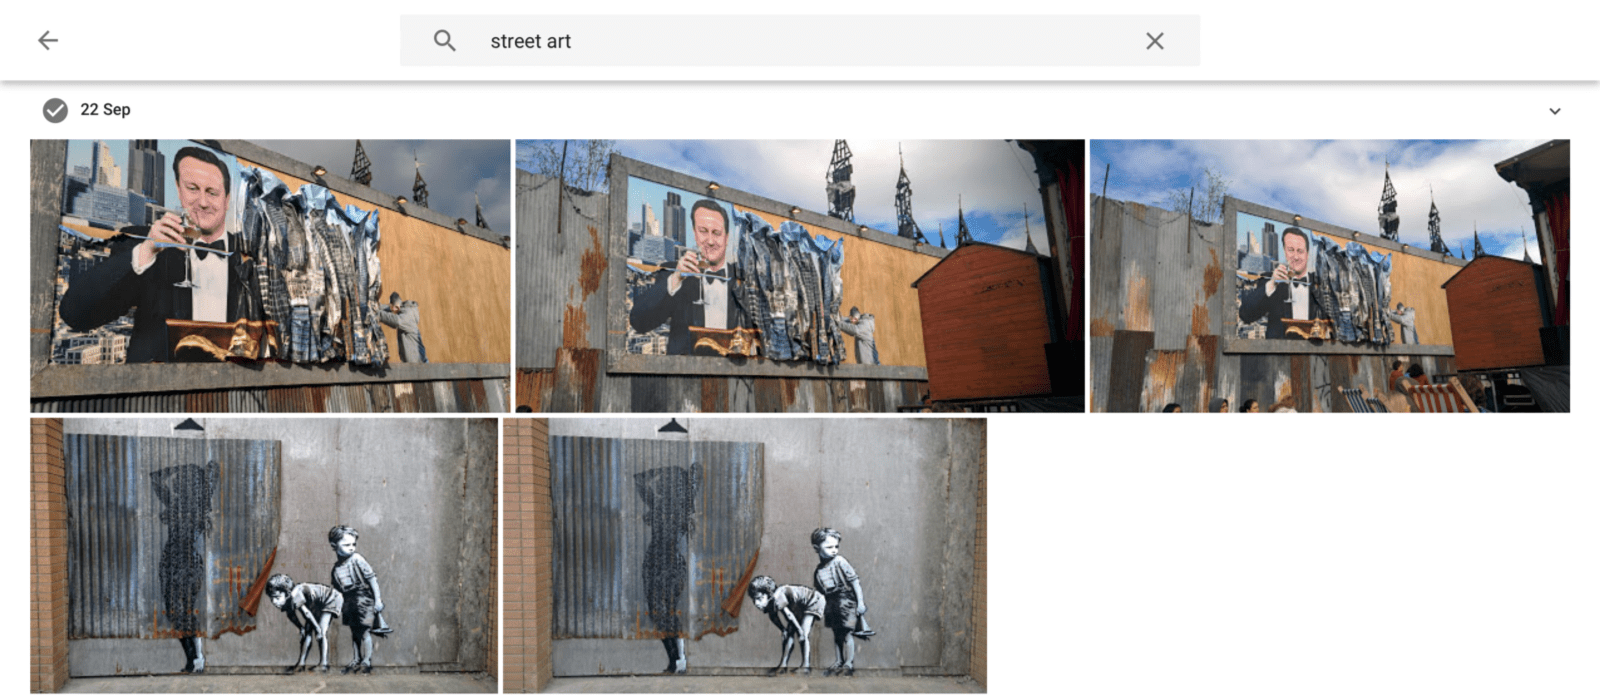 Google Photos search results for 'street art'